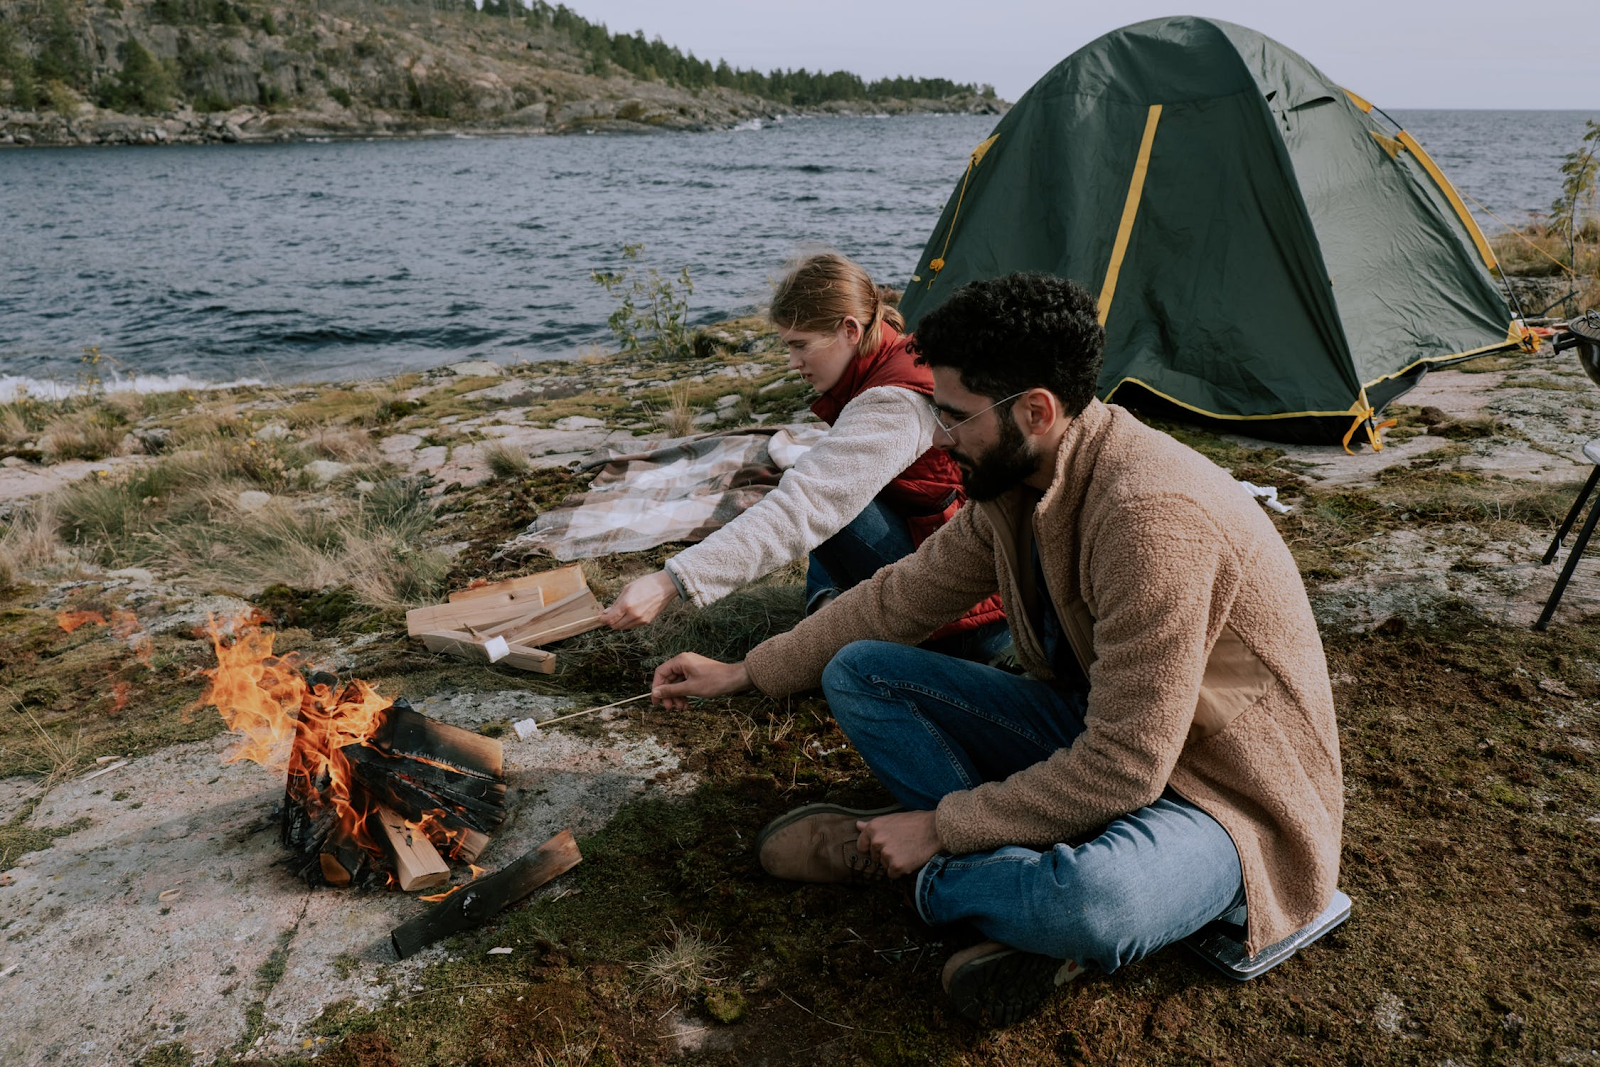 An image showing two people roasting marshmallows, a common activity during camping trips.